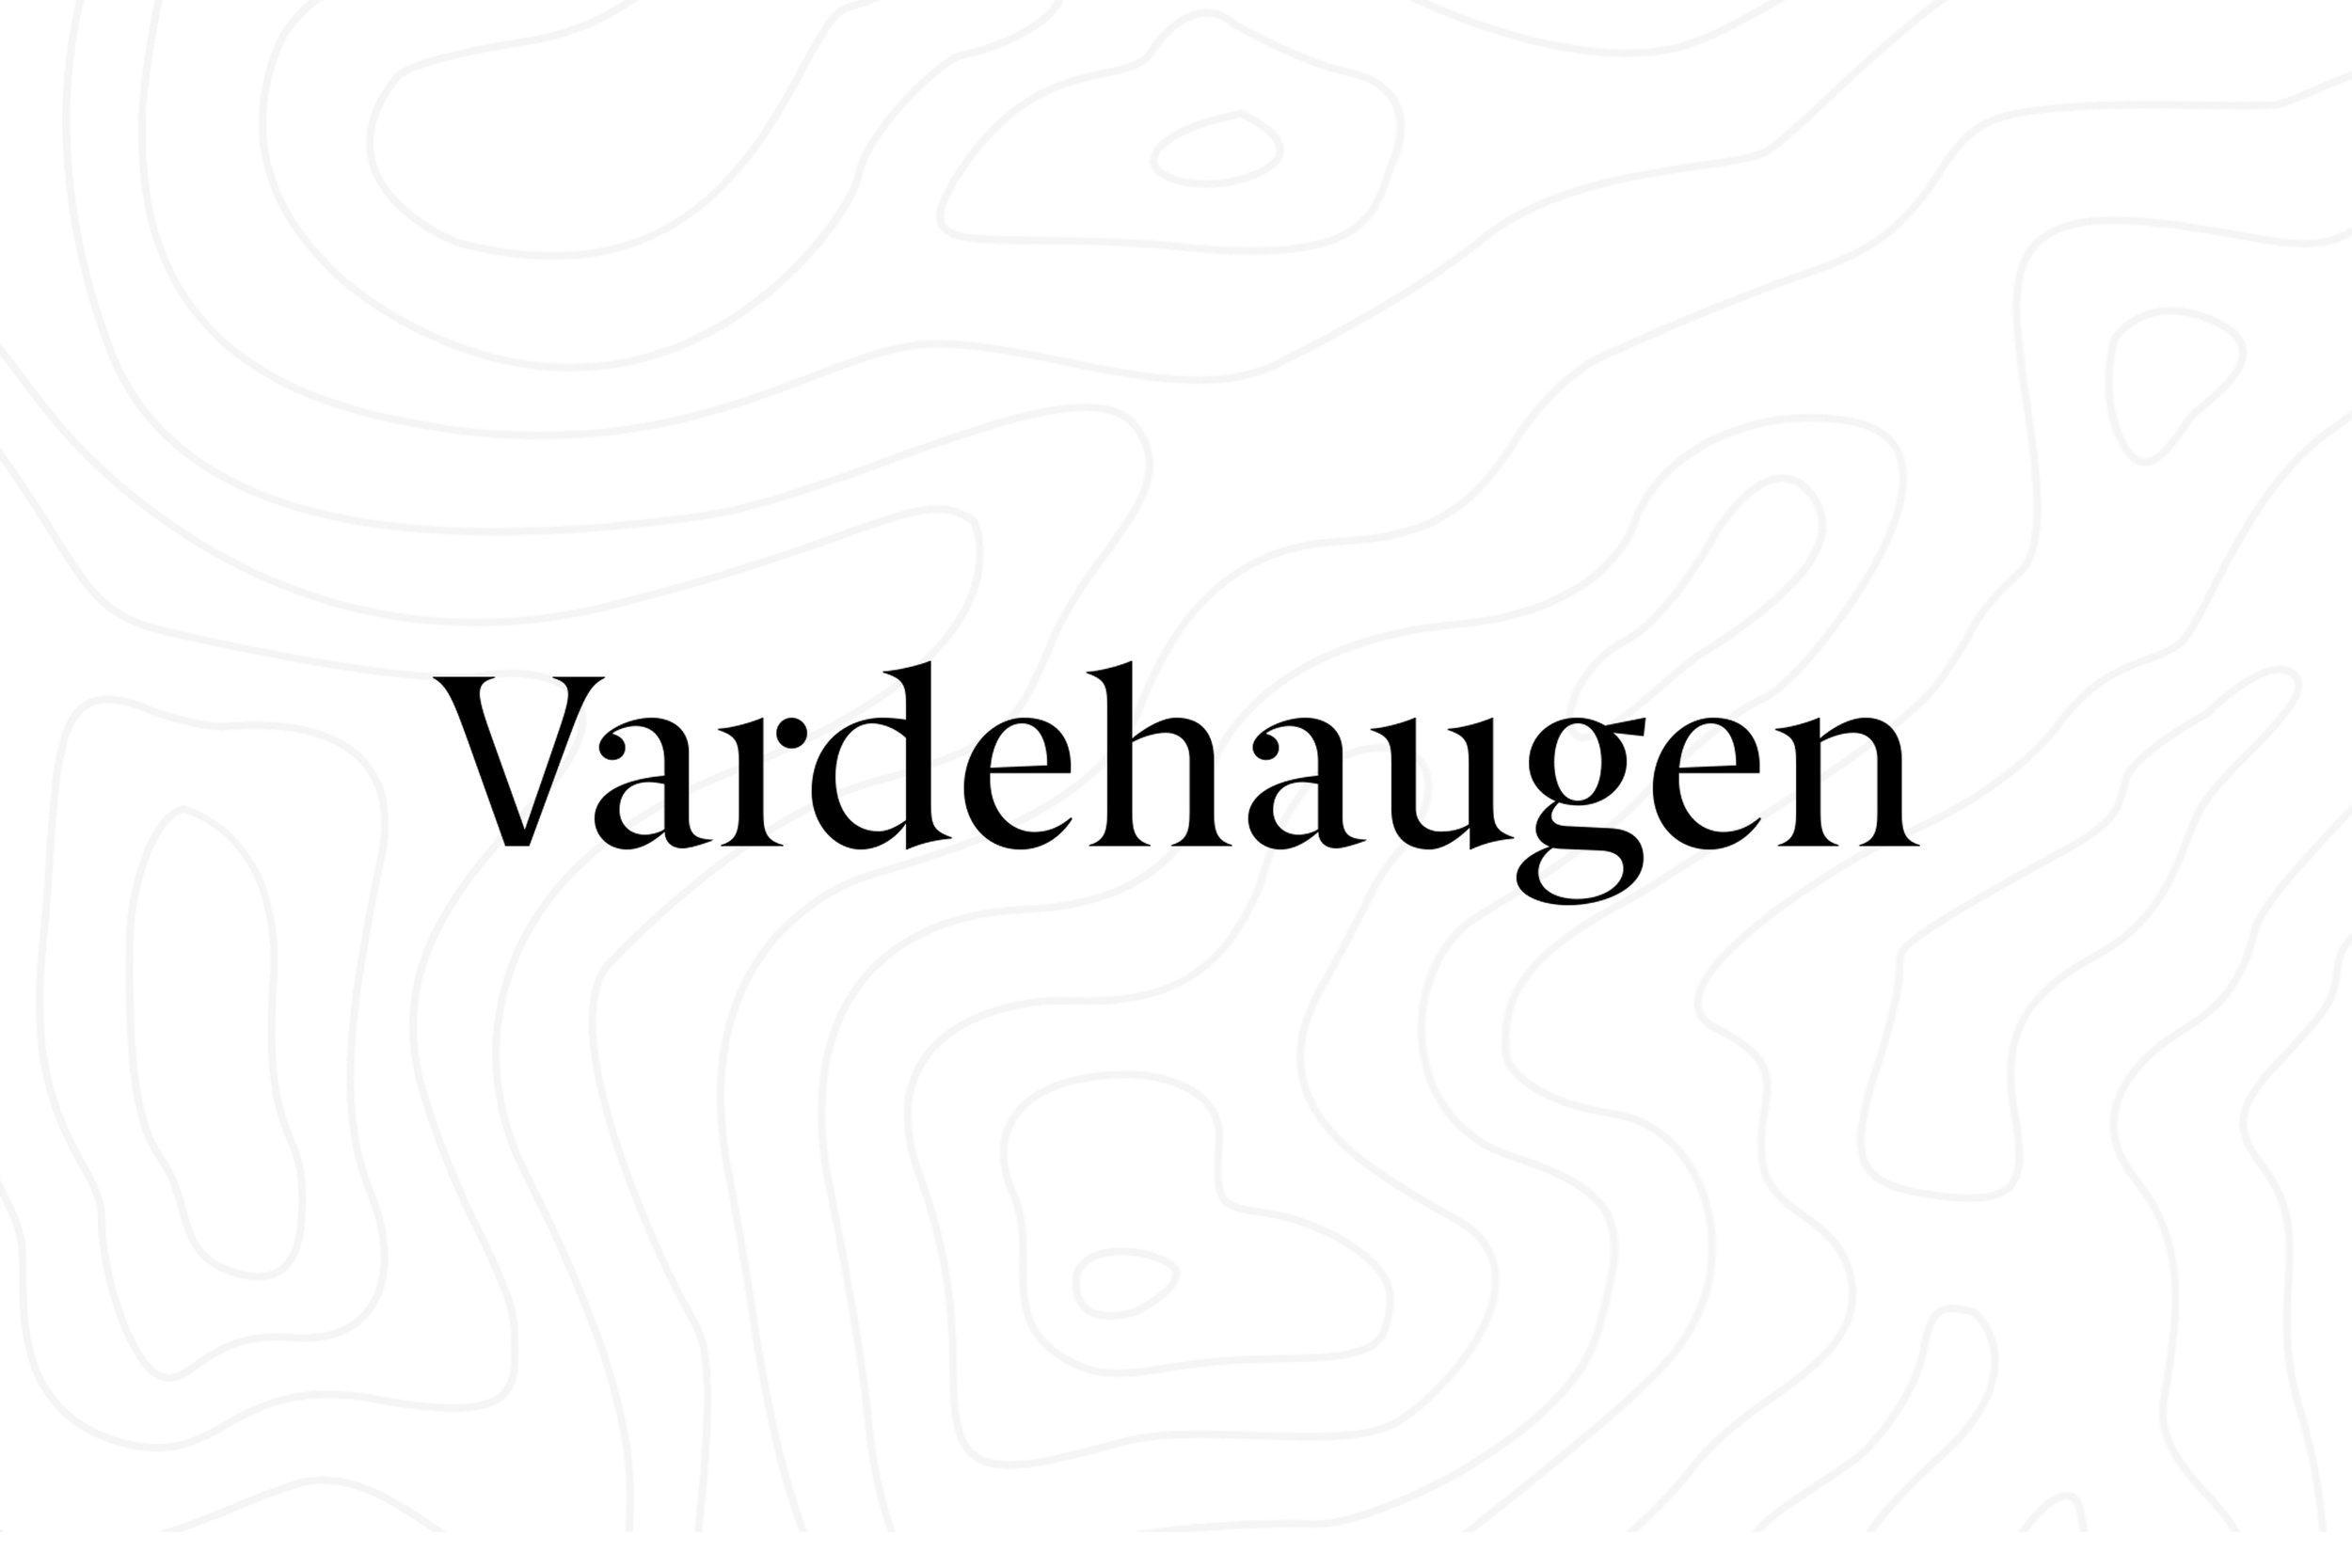 The amazing Vardehaugen is behind the FORMAT LIGHT 2019. Stay tuned for an introduction to the office and the story behind their design.